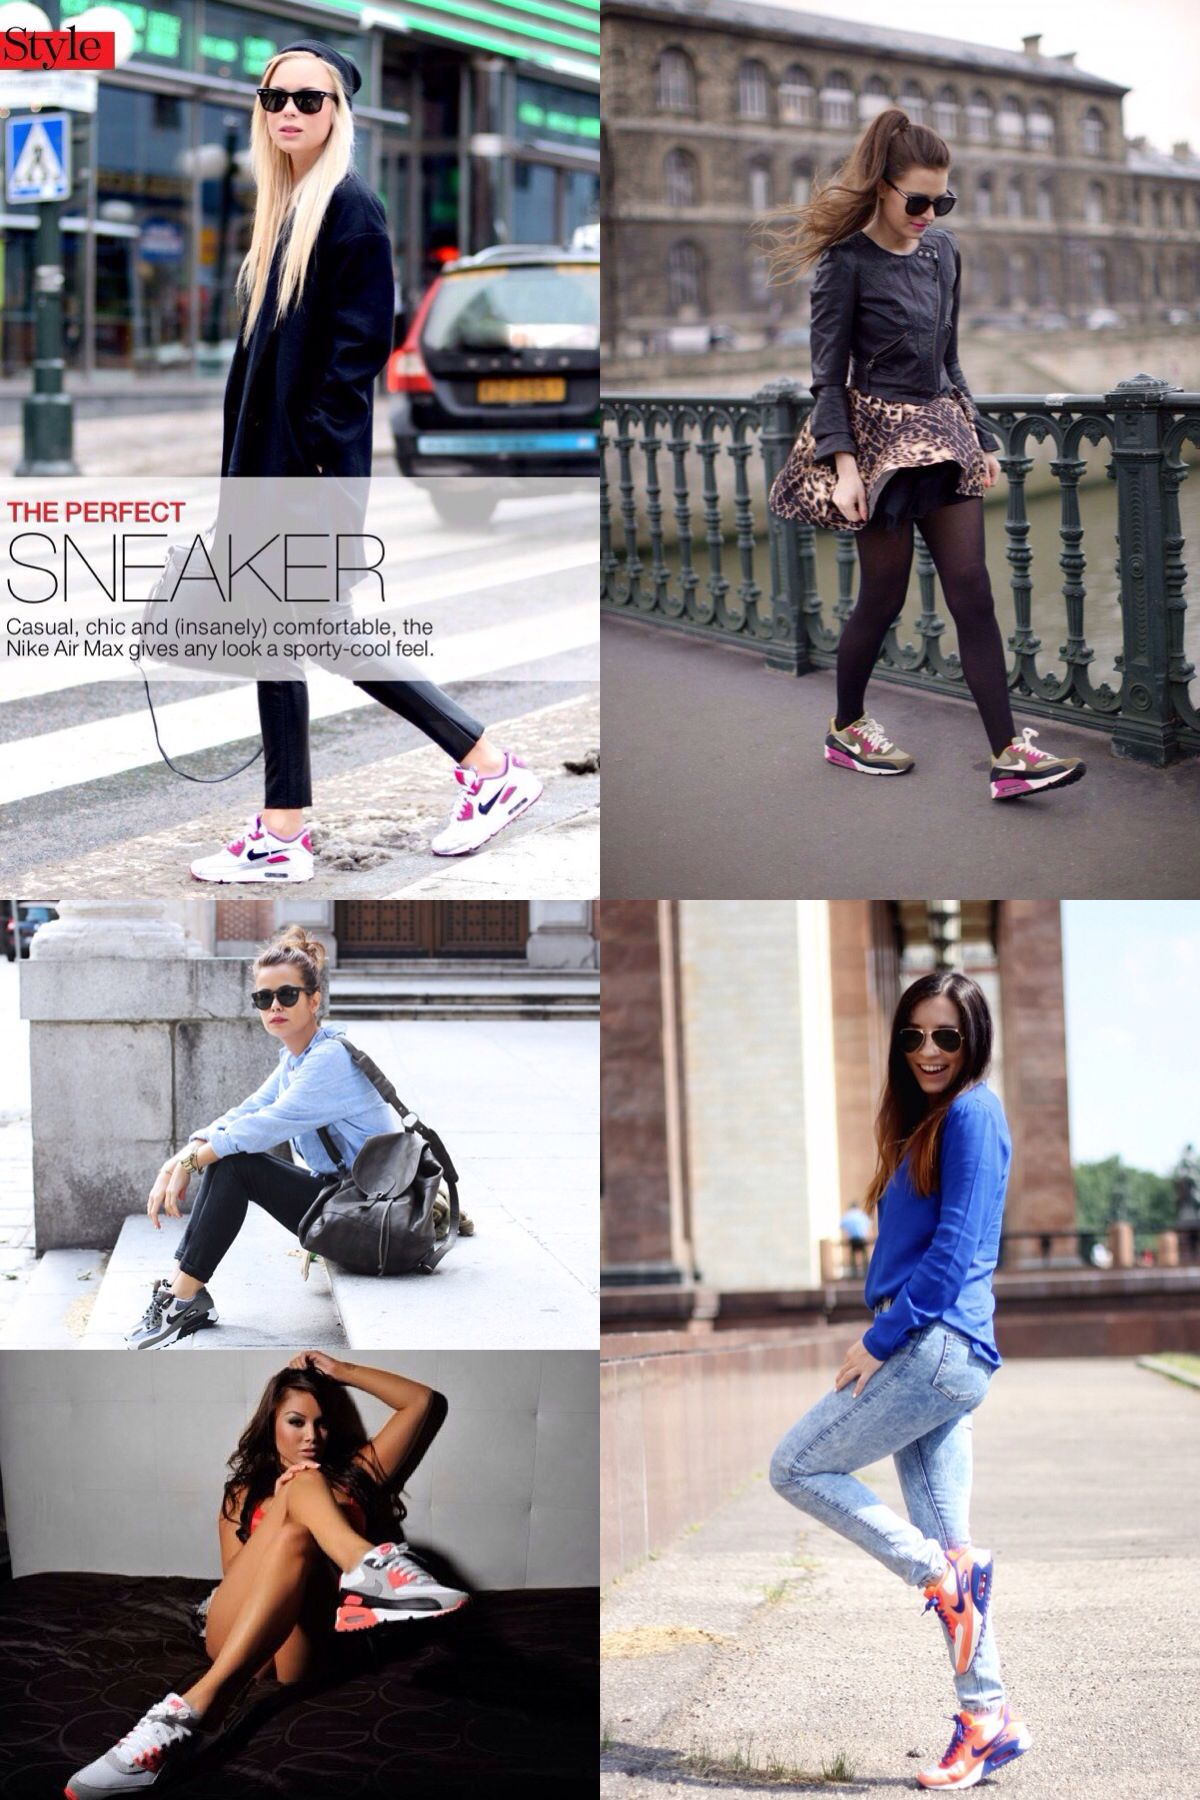 reputable site 64745 92cfe Nike air max 40   sneaker   outfit   fashion